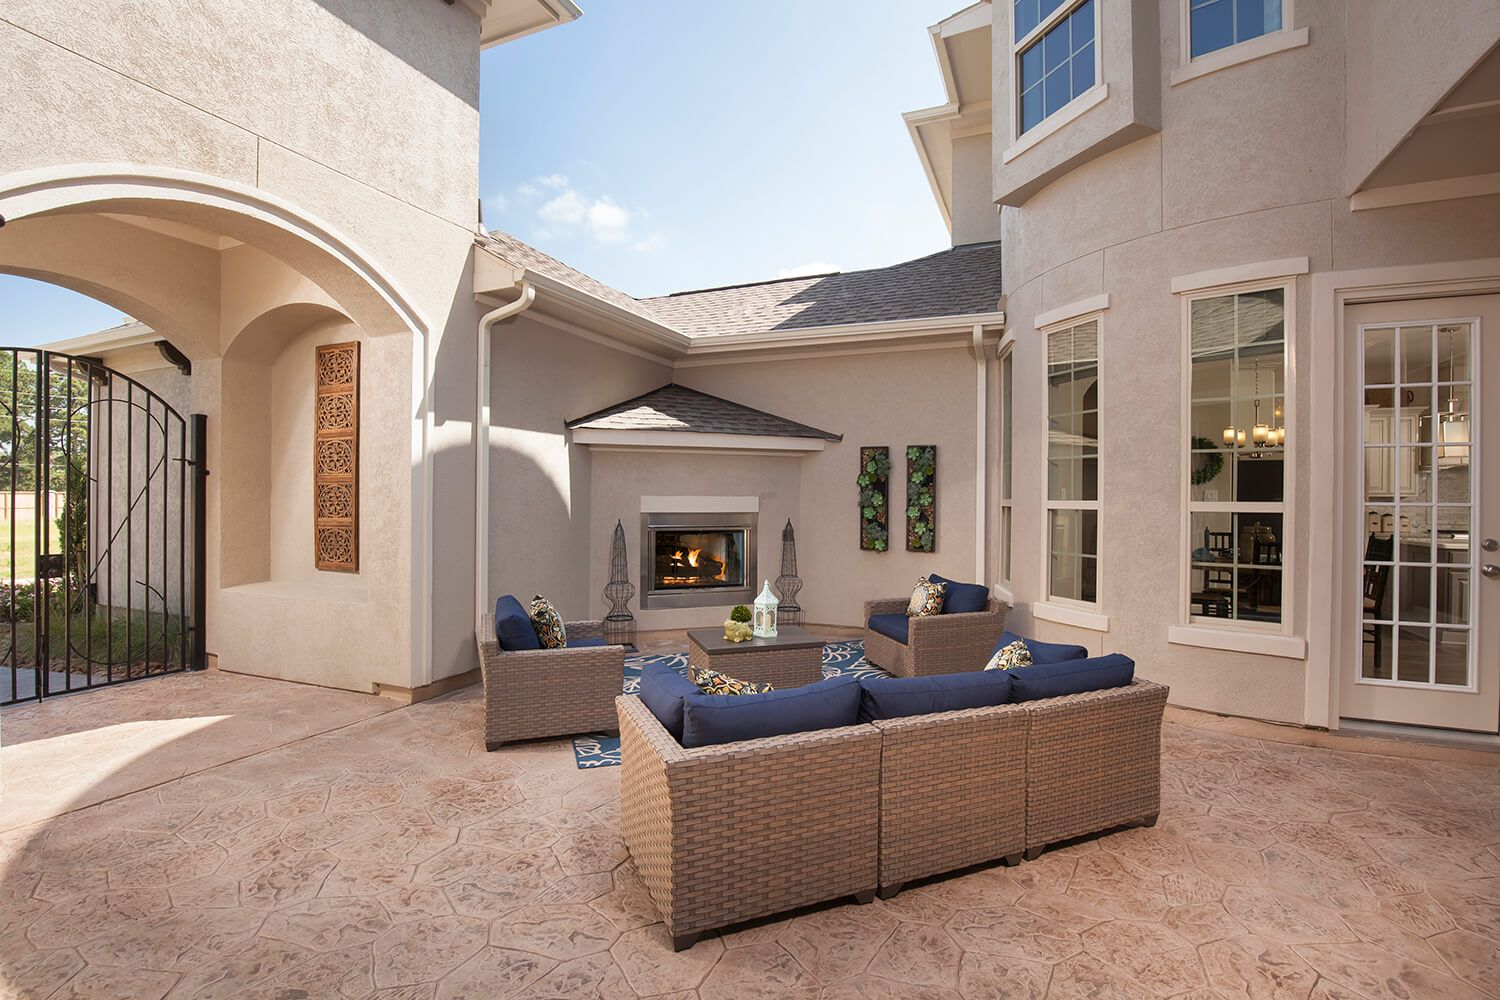 Courtyard - The Katy (8264 Plan)